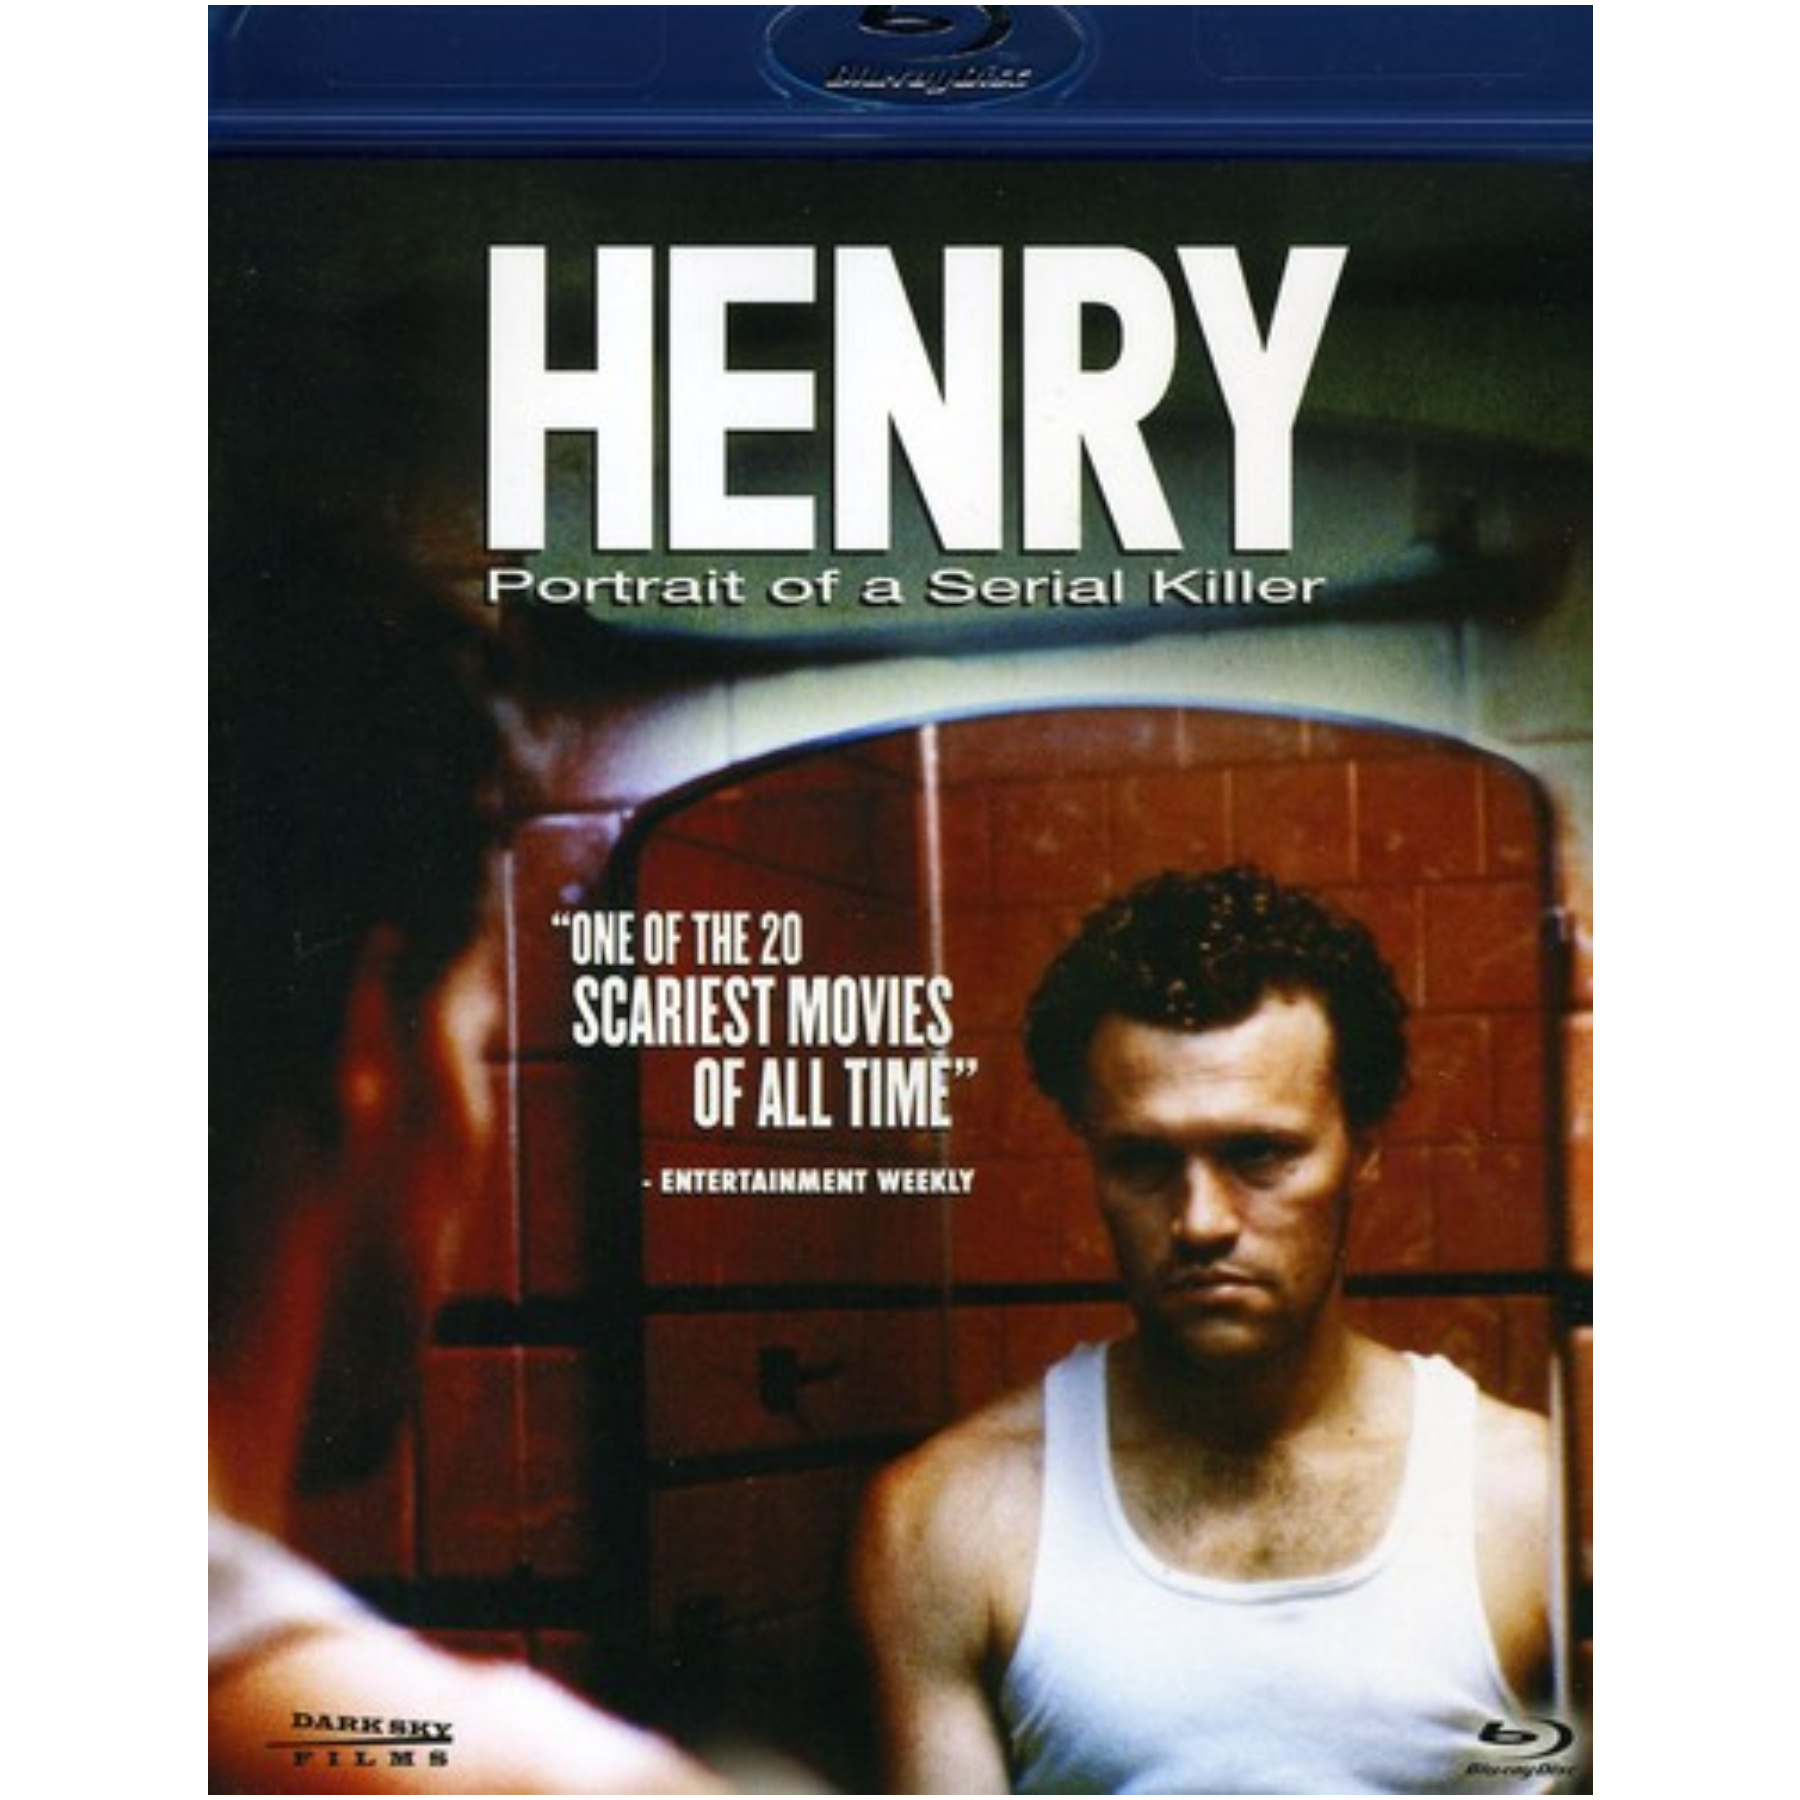 Henry-Portrait Of A Serial Killer Blu-Ray 03030618049